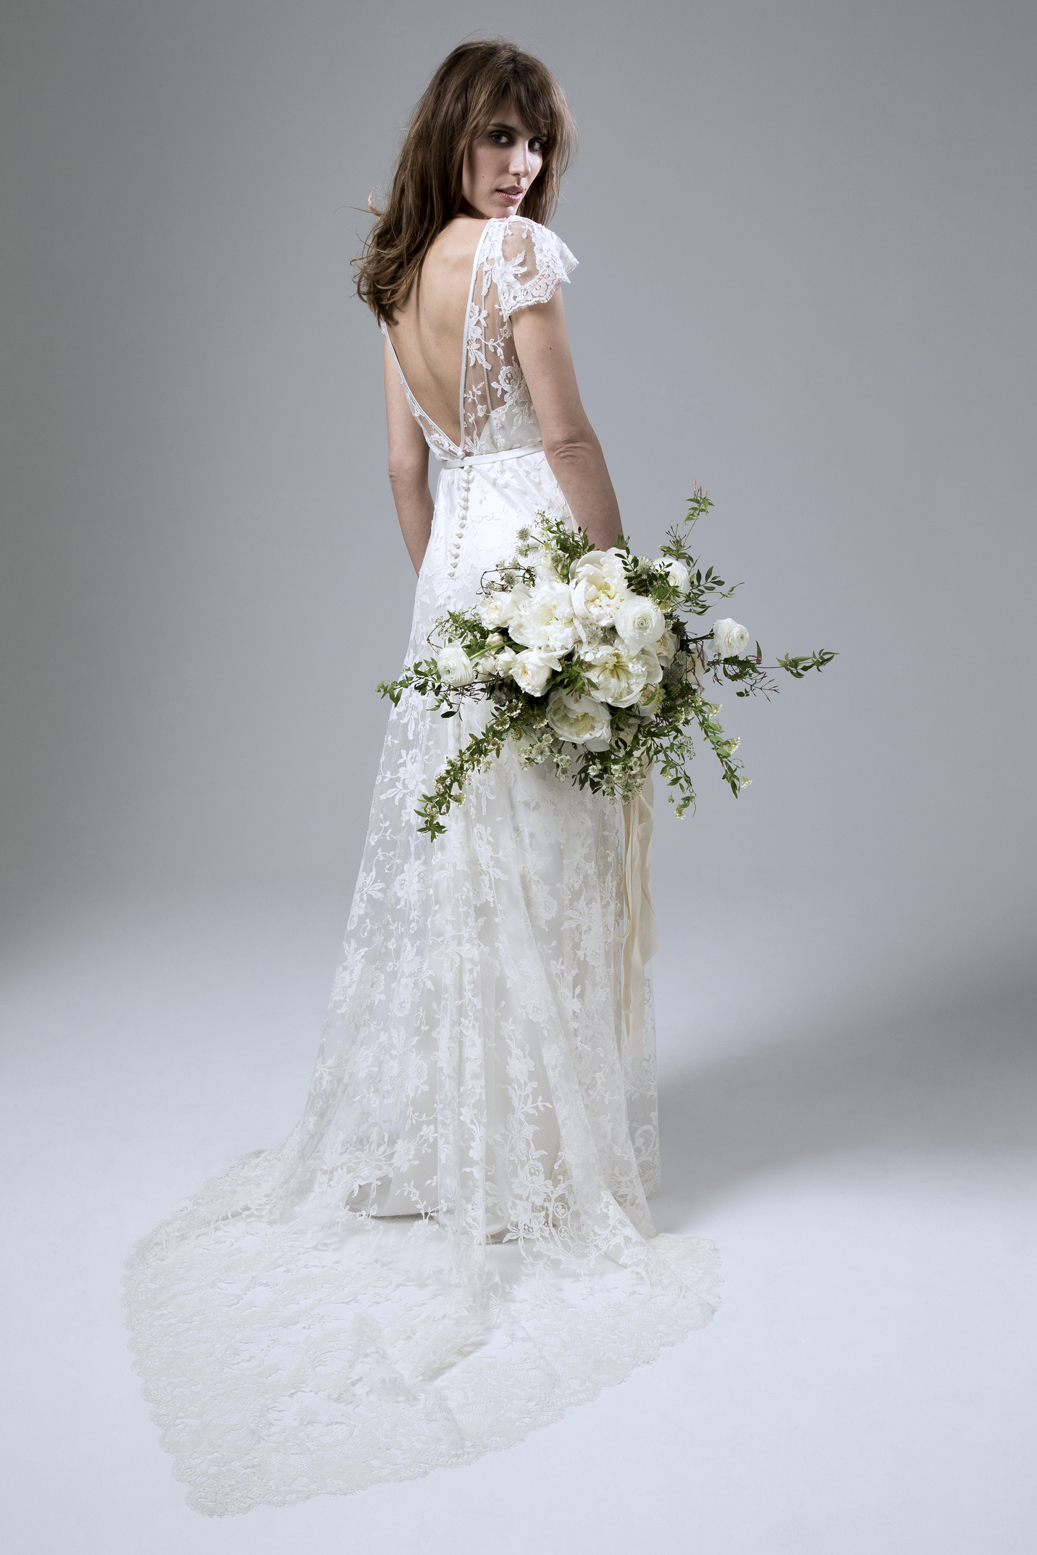 Iris Rose lace wedding dress with cap sleeves from Halfpenny London